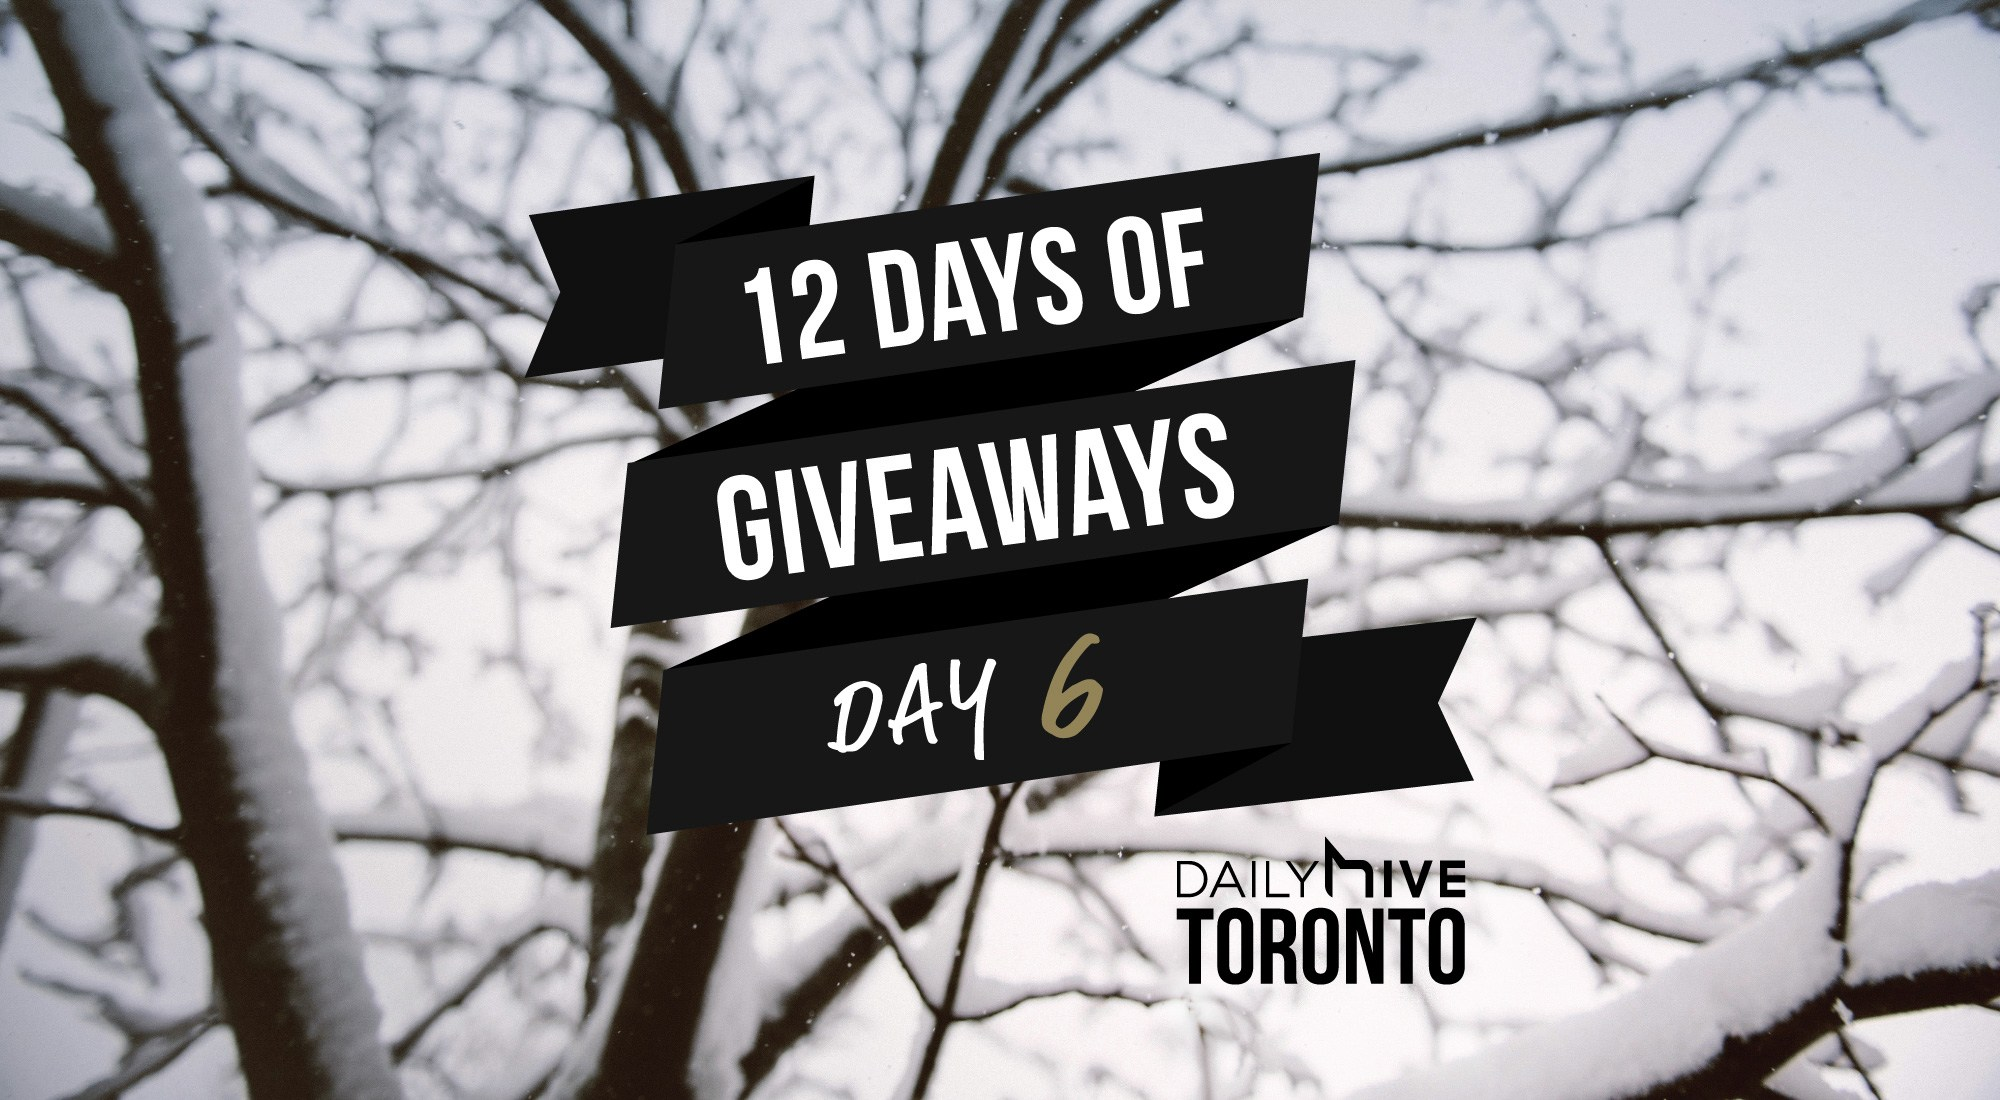 12 days of giveaways toronto 61